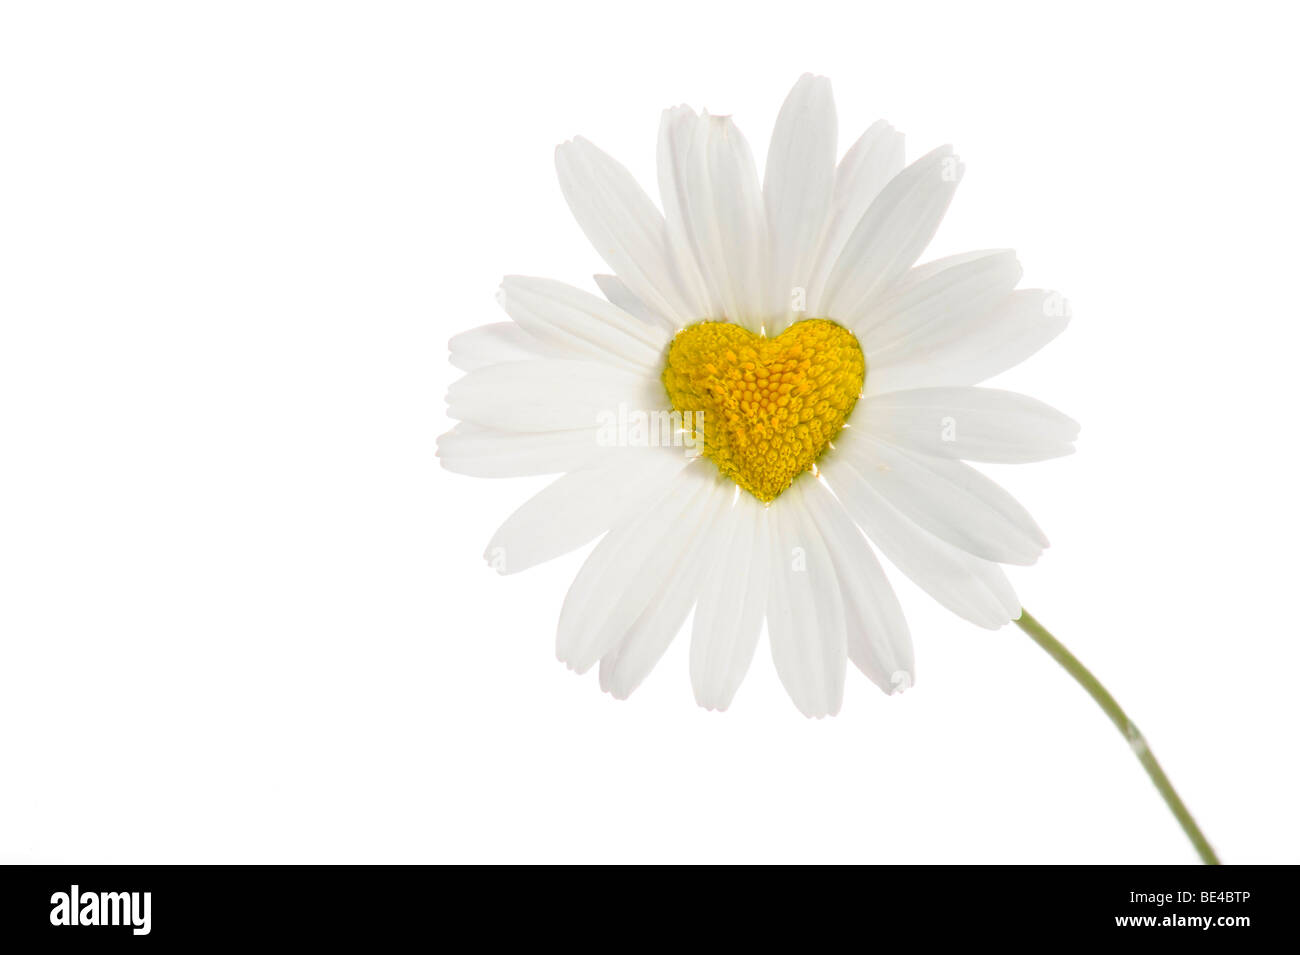 Daisy (Leucanthemum) with disc flowers in heart shape - Stock Image